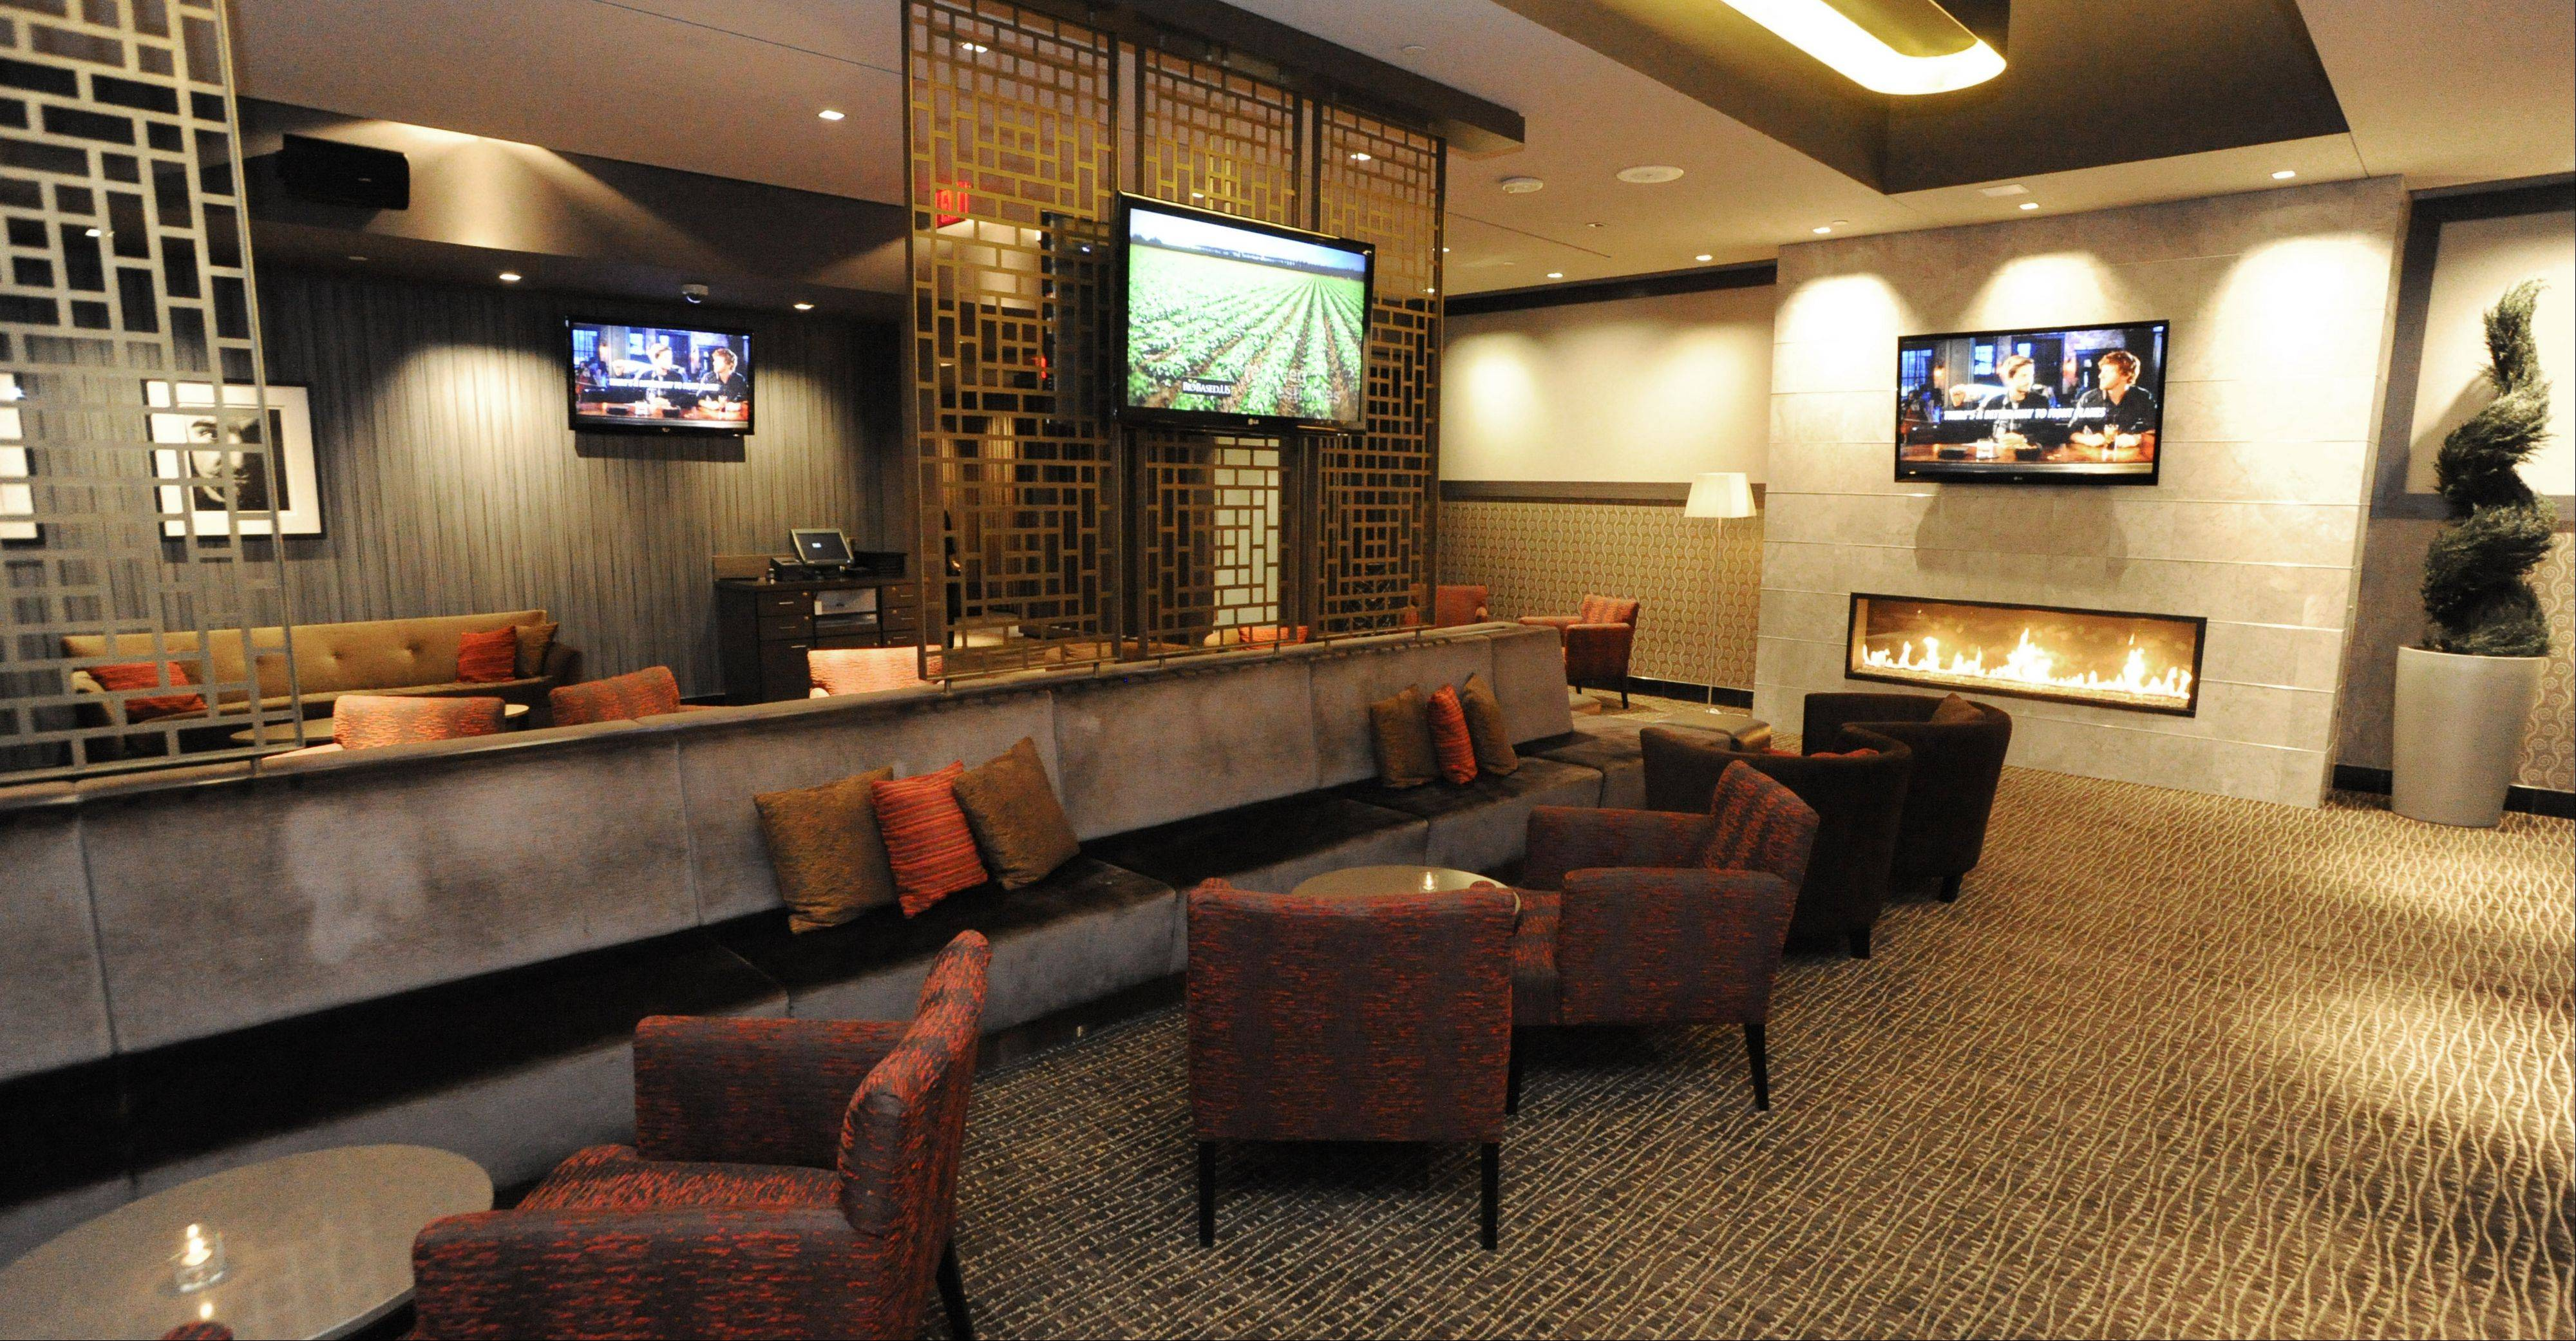 Relax with a drink before your movie feature starts in Salt Sports Bar, the lounge at iPic Theater in South Barrington.